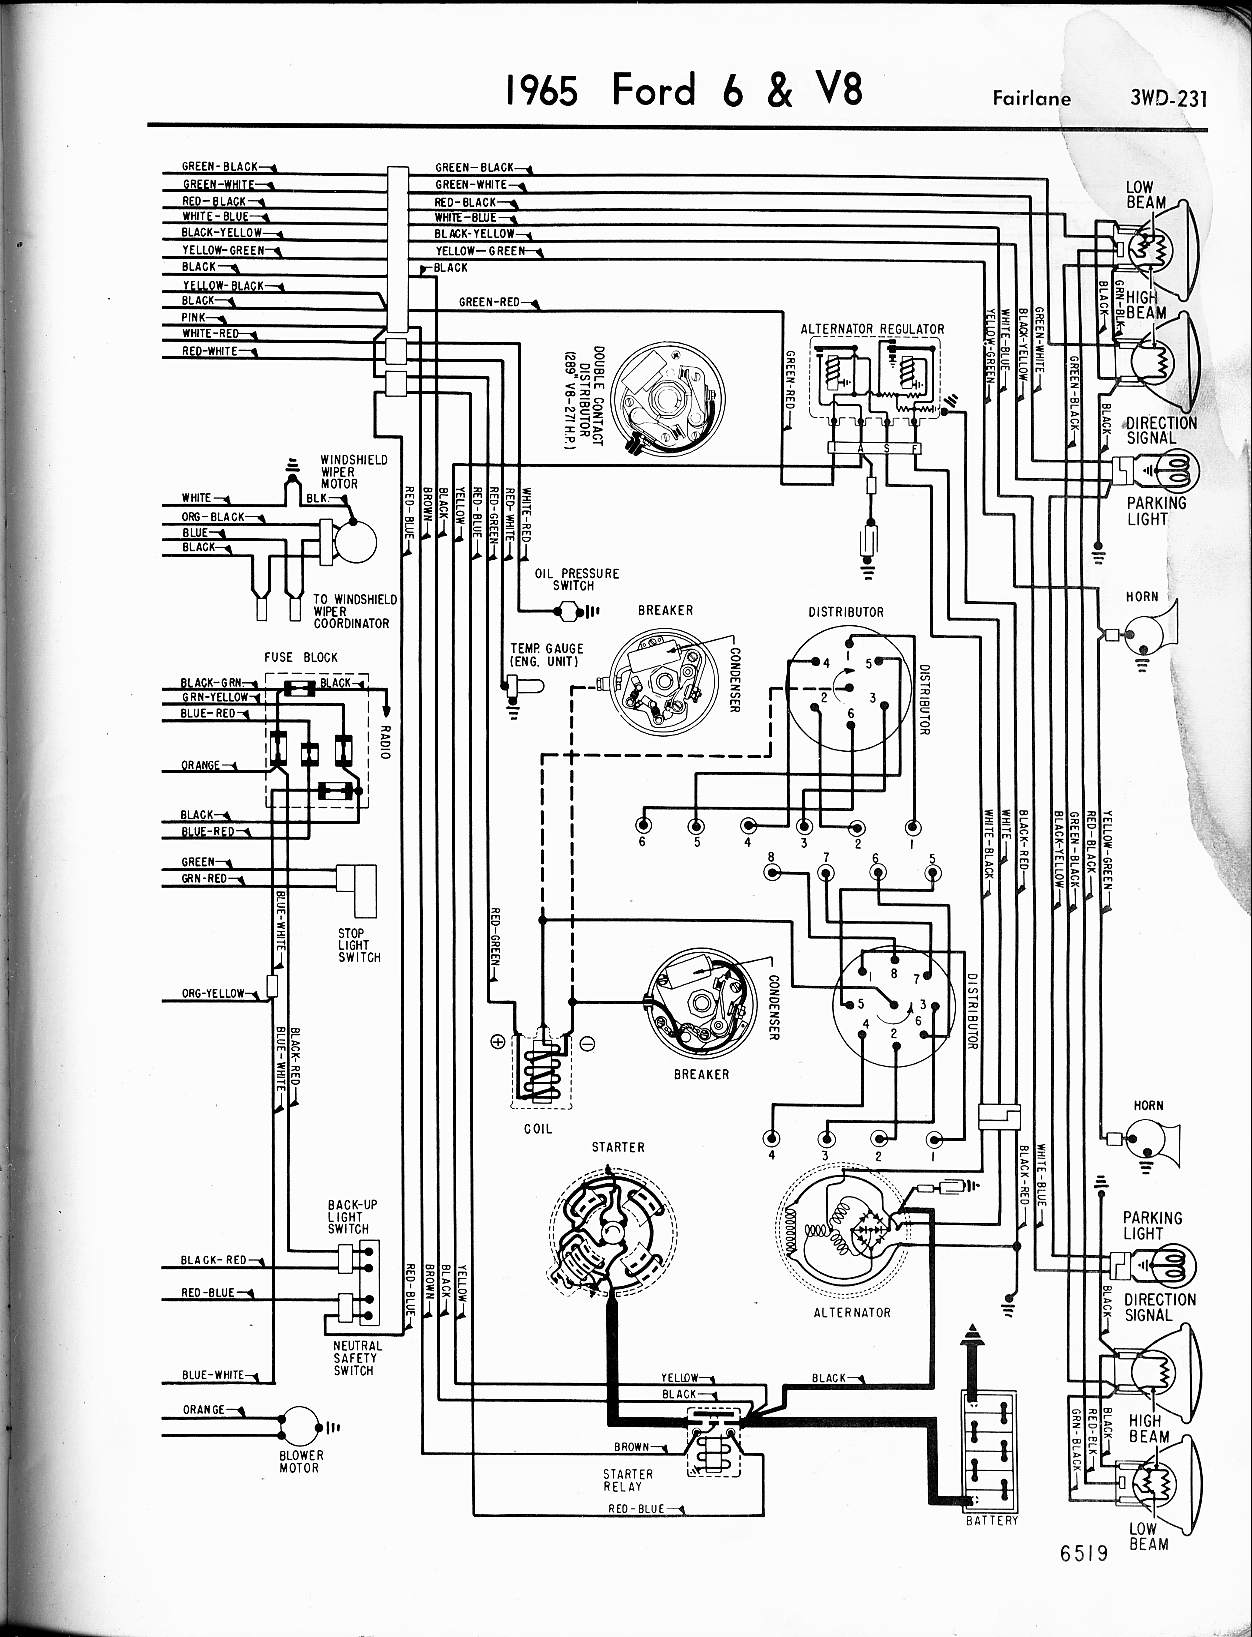 57 65 ford wiring diagrams 1979 dodge van wiring diagram 1965 6 & v8 fairlane right